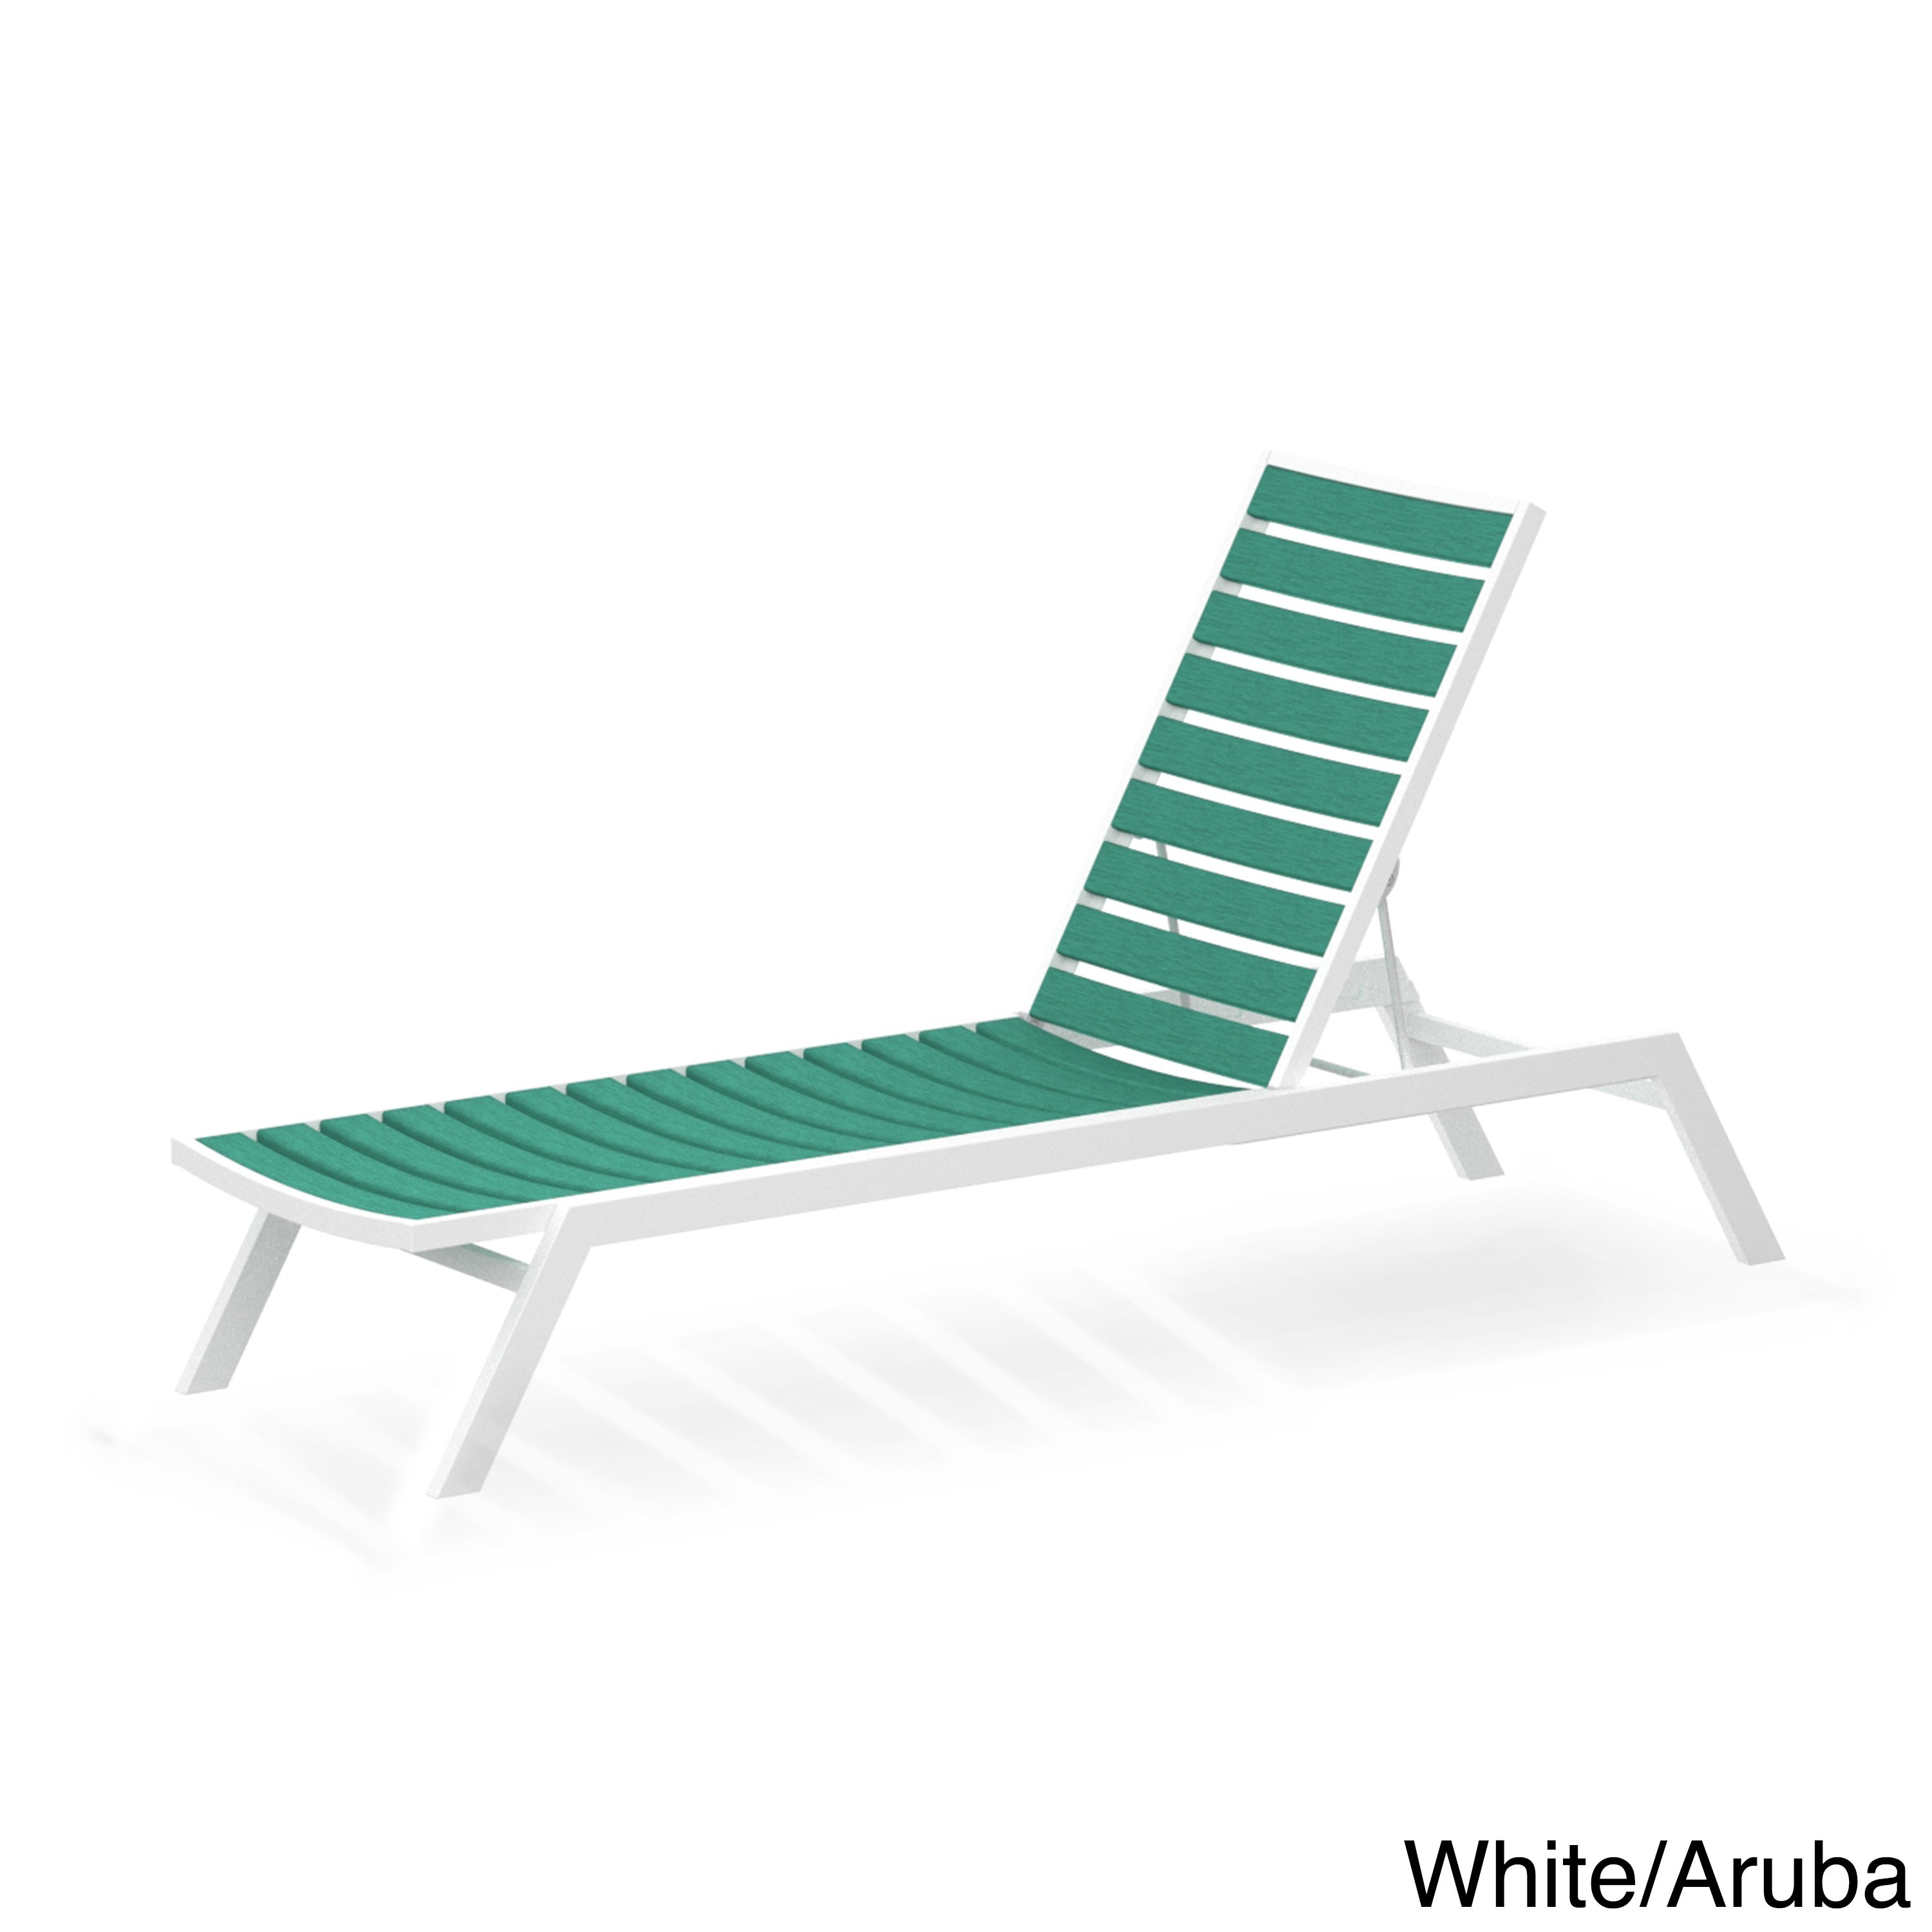 Enjoyable Polywood Euro Chaise Lounge Chair Short Links Chair Design For Home Short Linksinfo